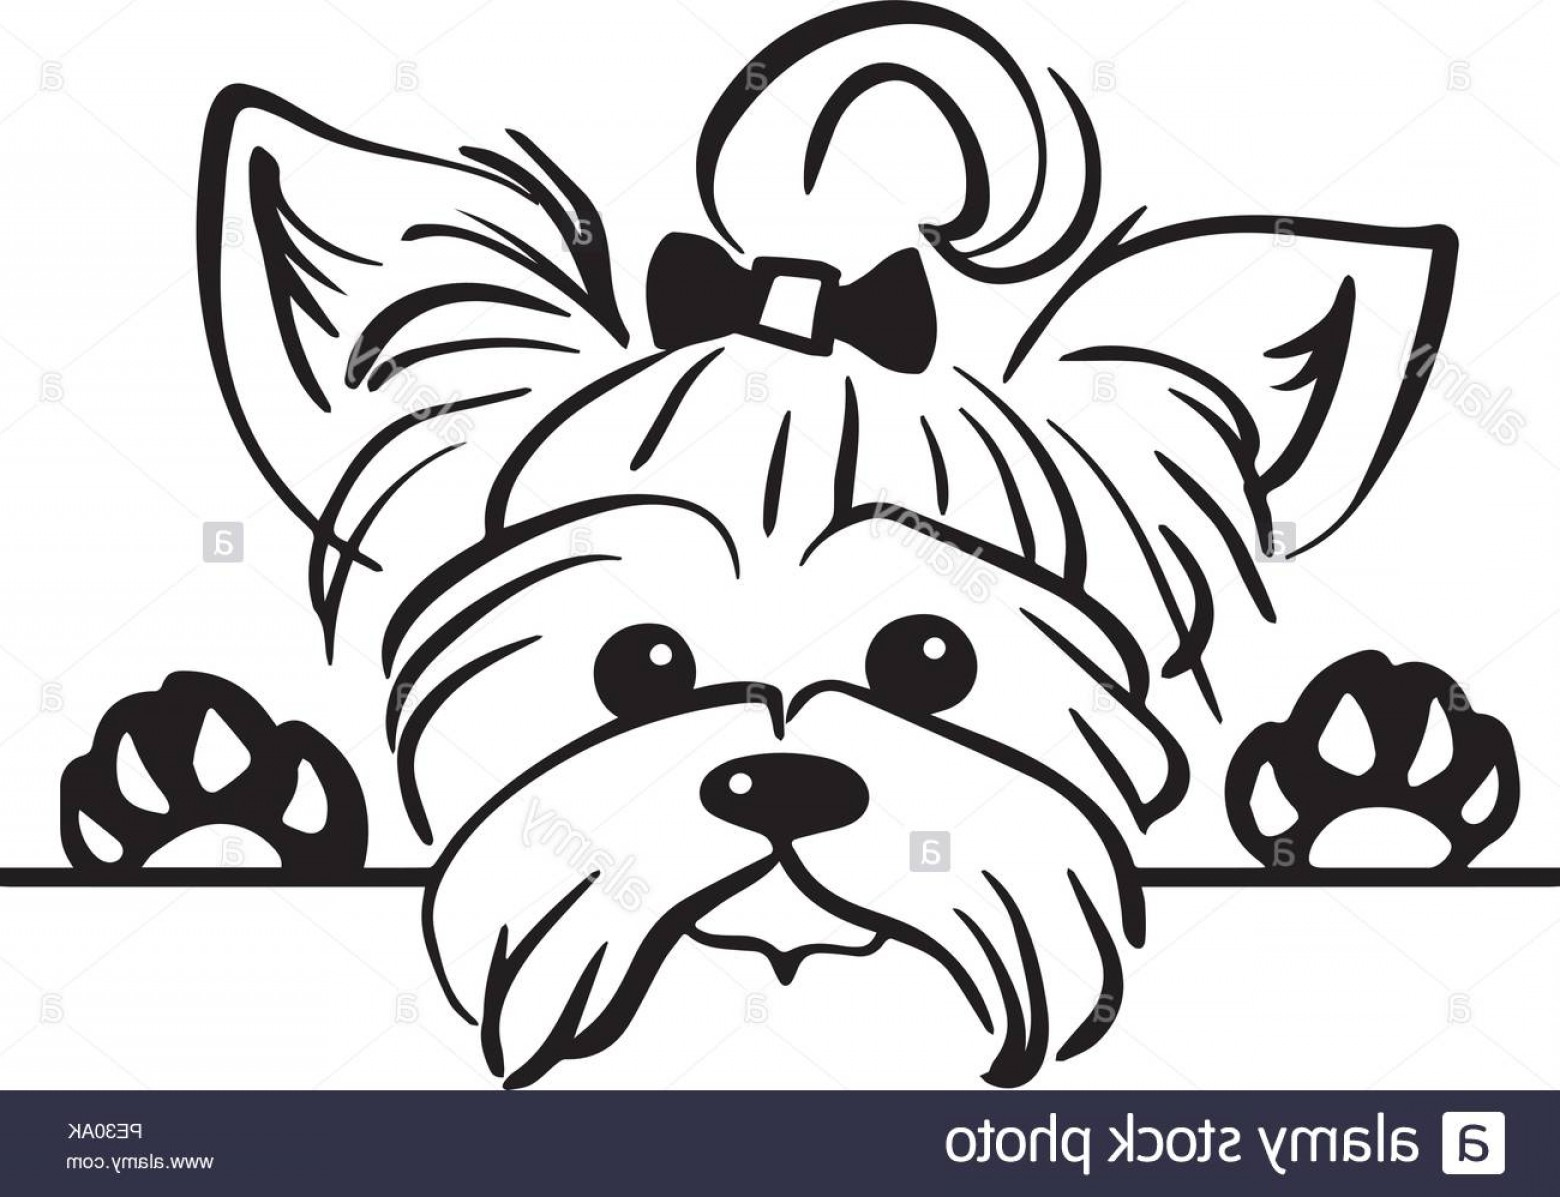 Cute Yorkie Dog Vector: Yorkshire Terrier Yorkie Dog Breed Pet Puppy Isolated Head Face Image